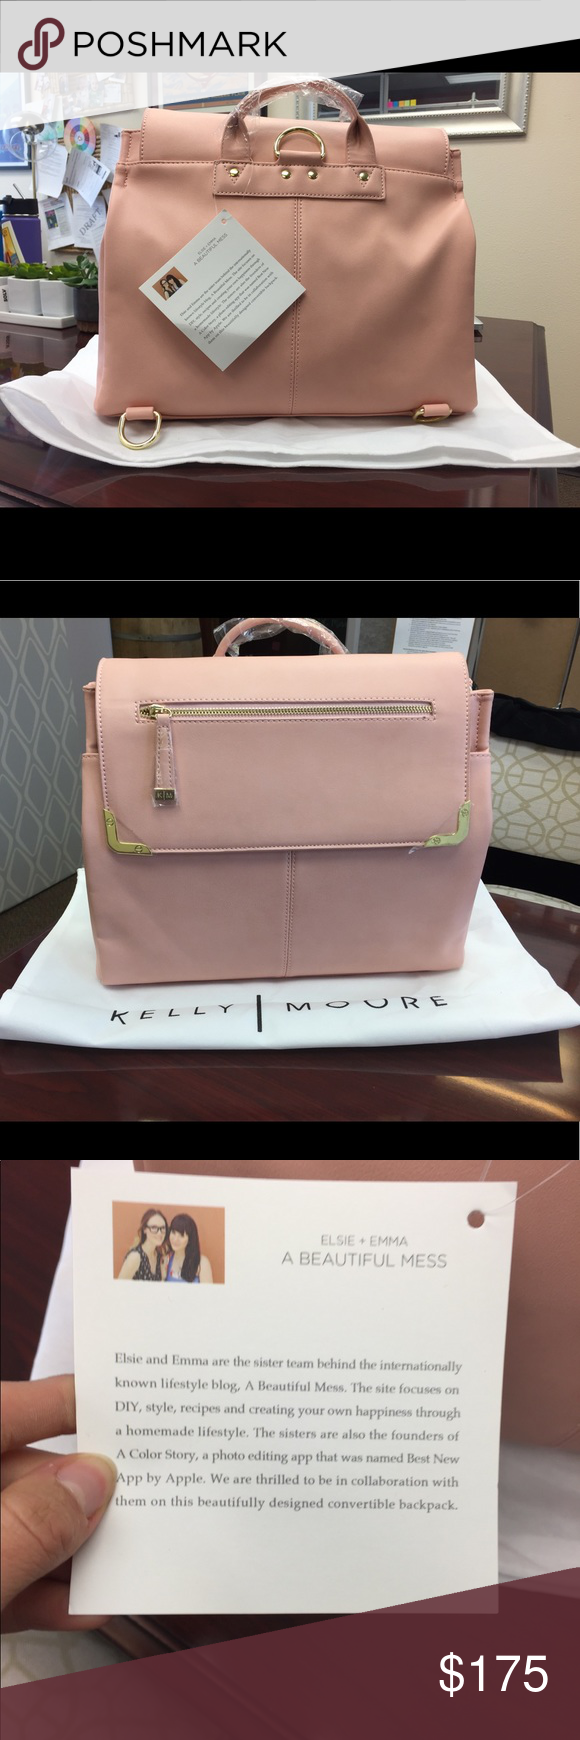 17da1ae25234 Kelly Moore New Beautiful Mess Bag Backpack Brand new with tags ...